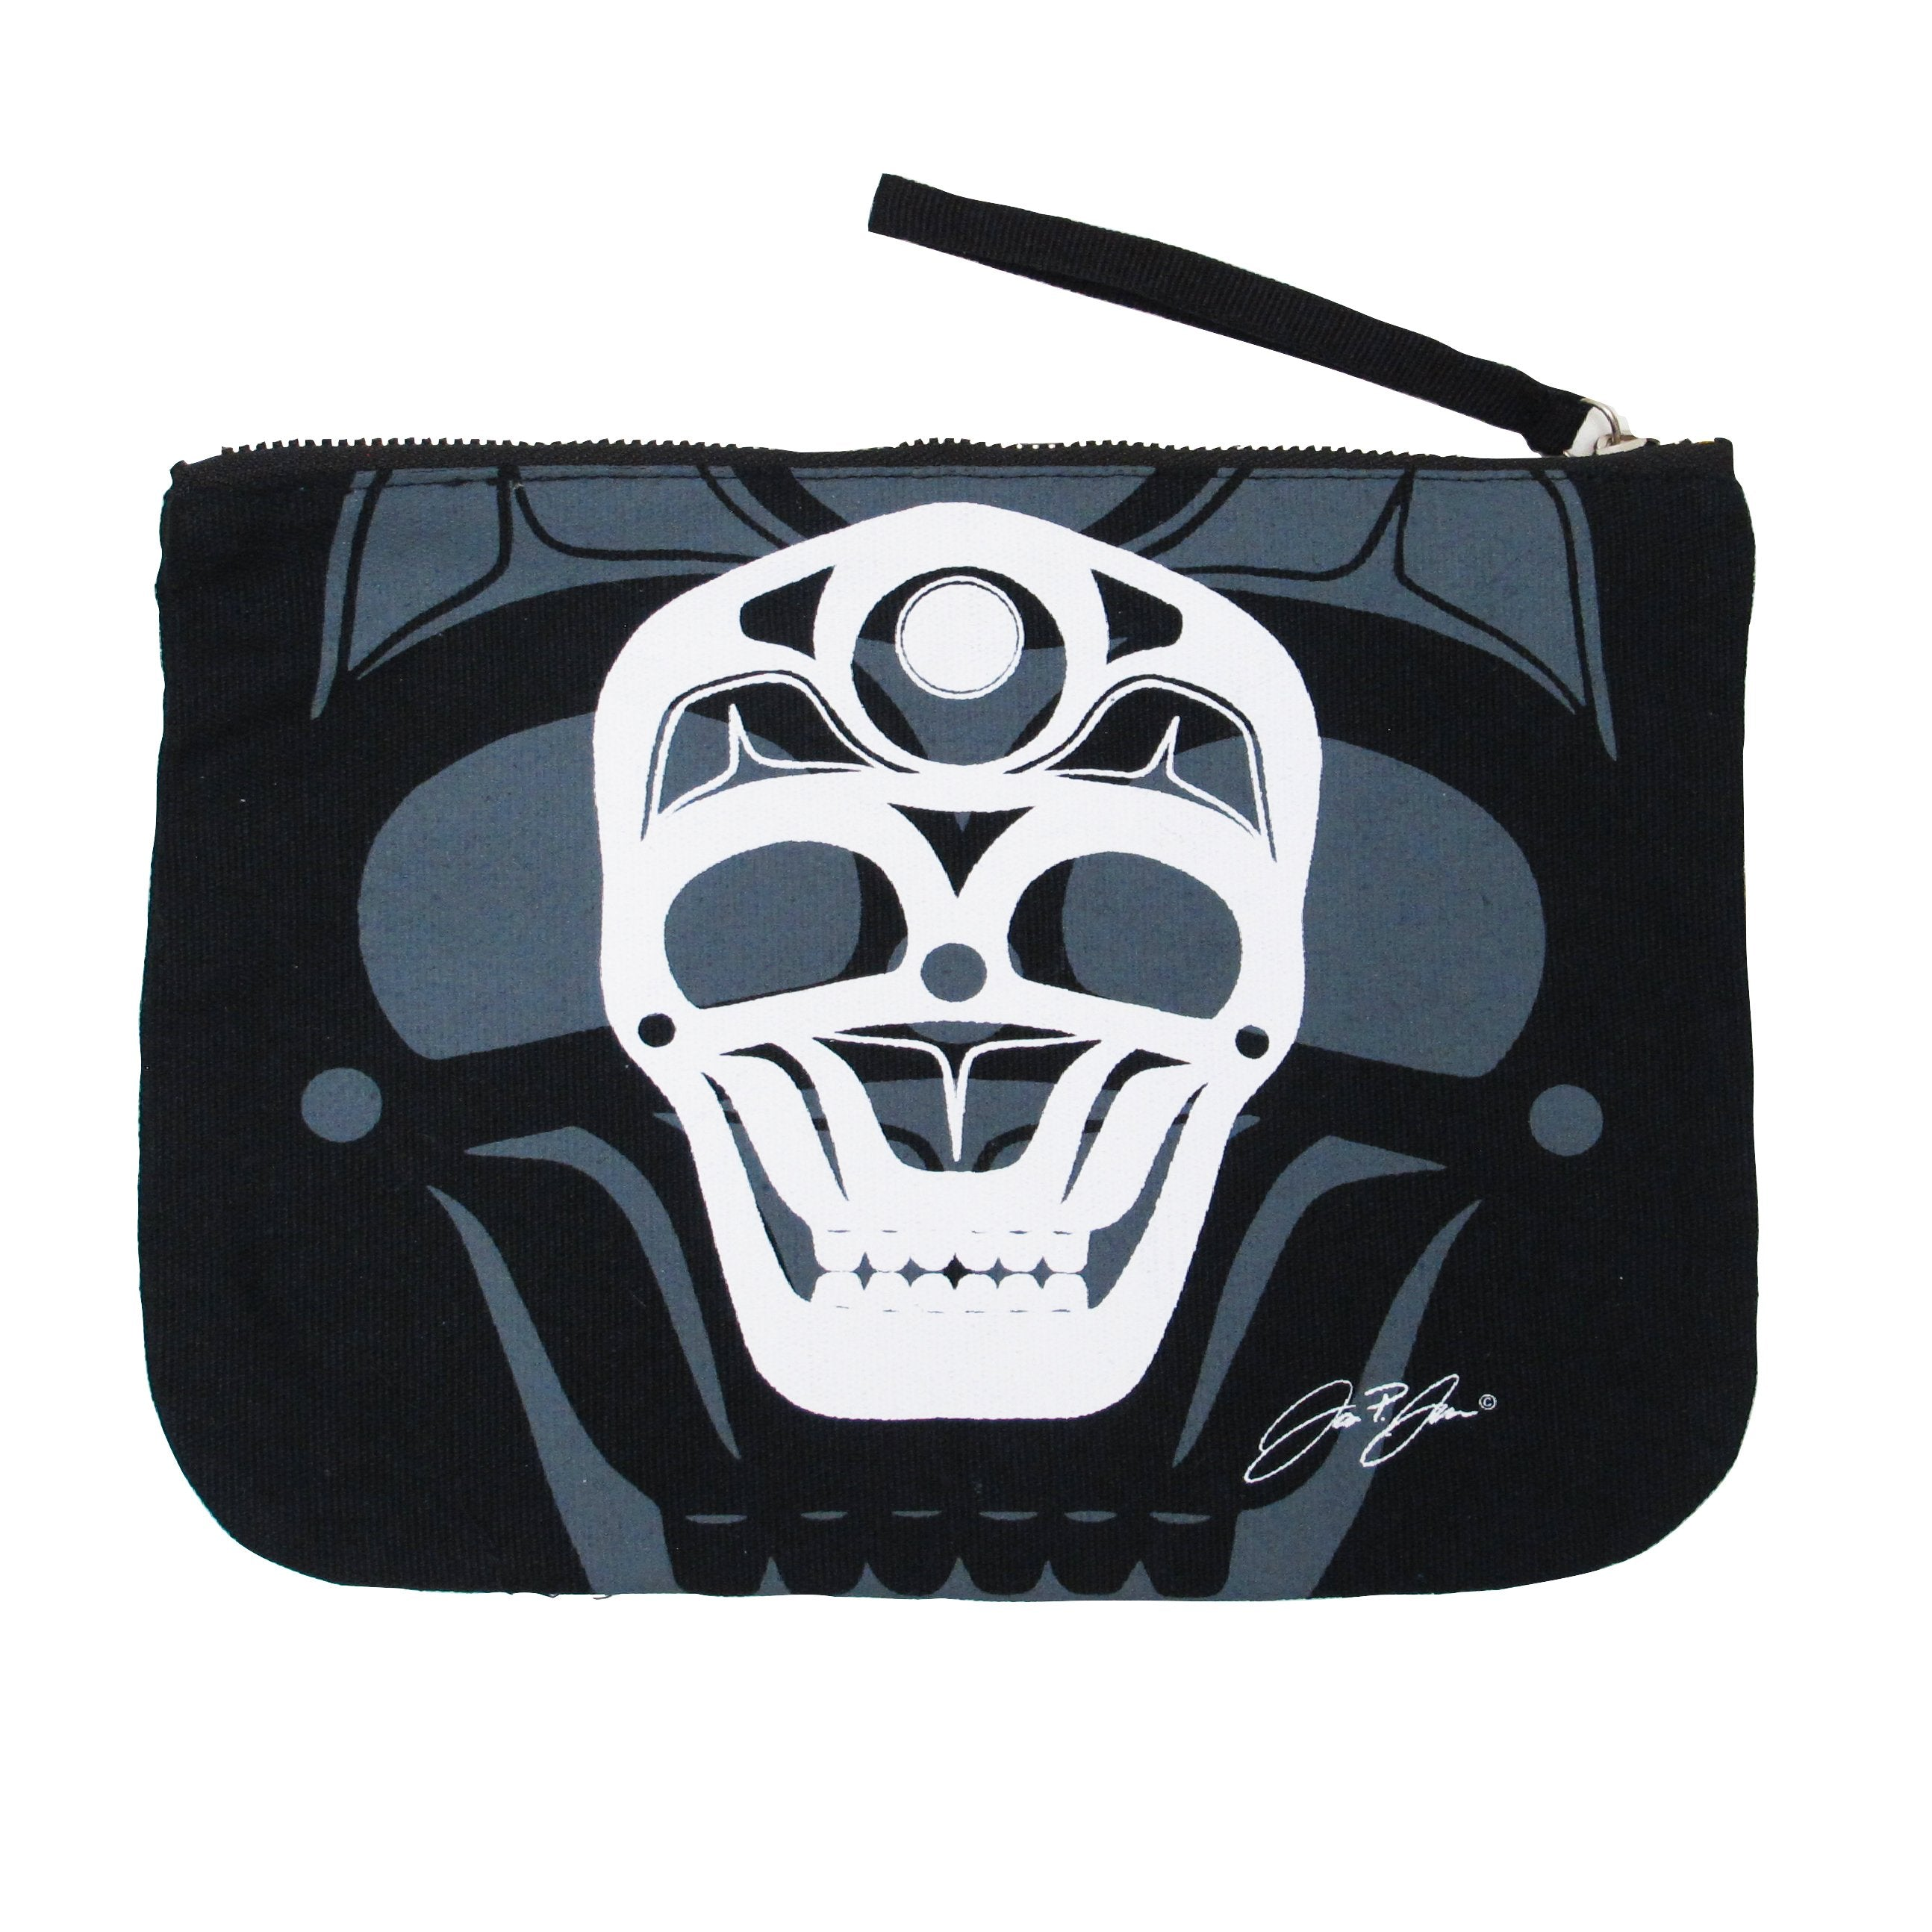 James Johnson Skull Eco Zip Pouch - Oscardo